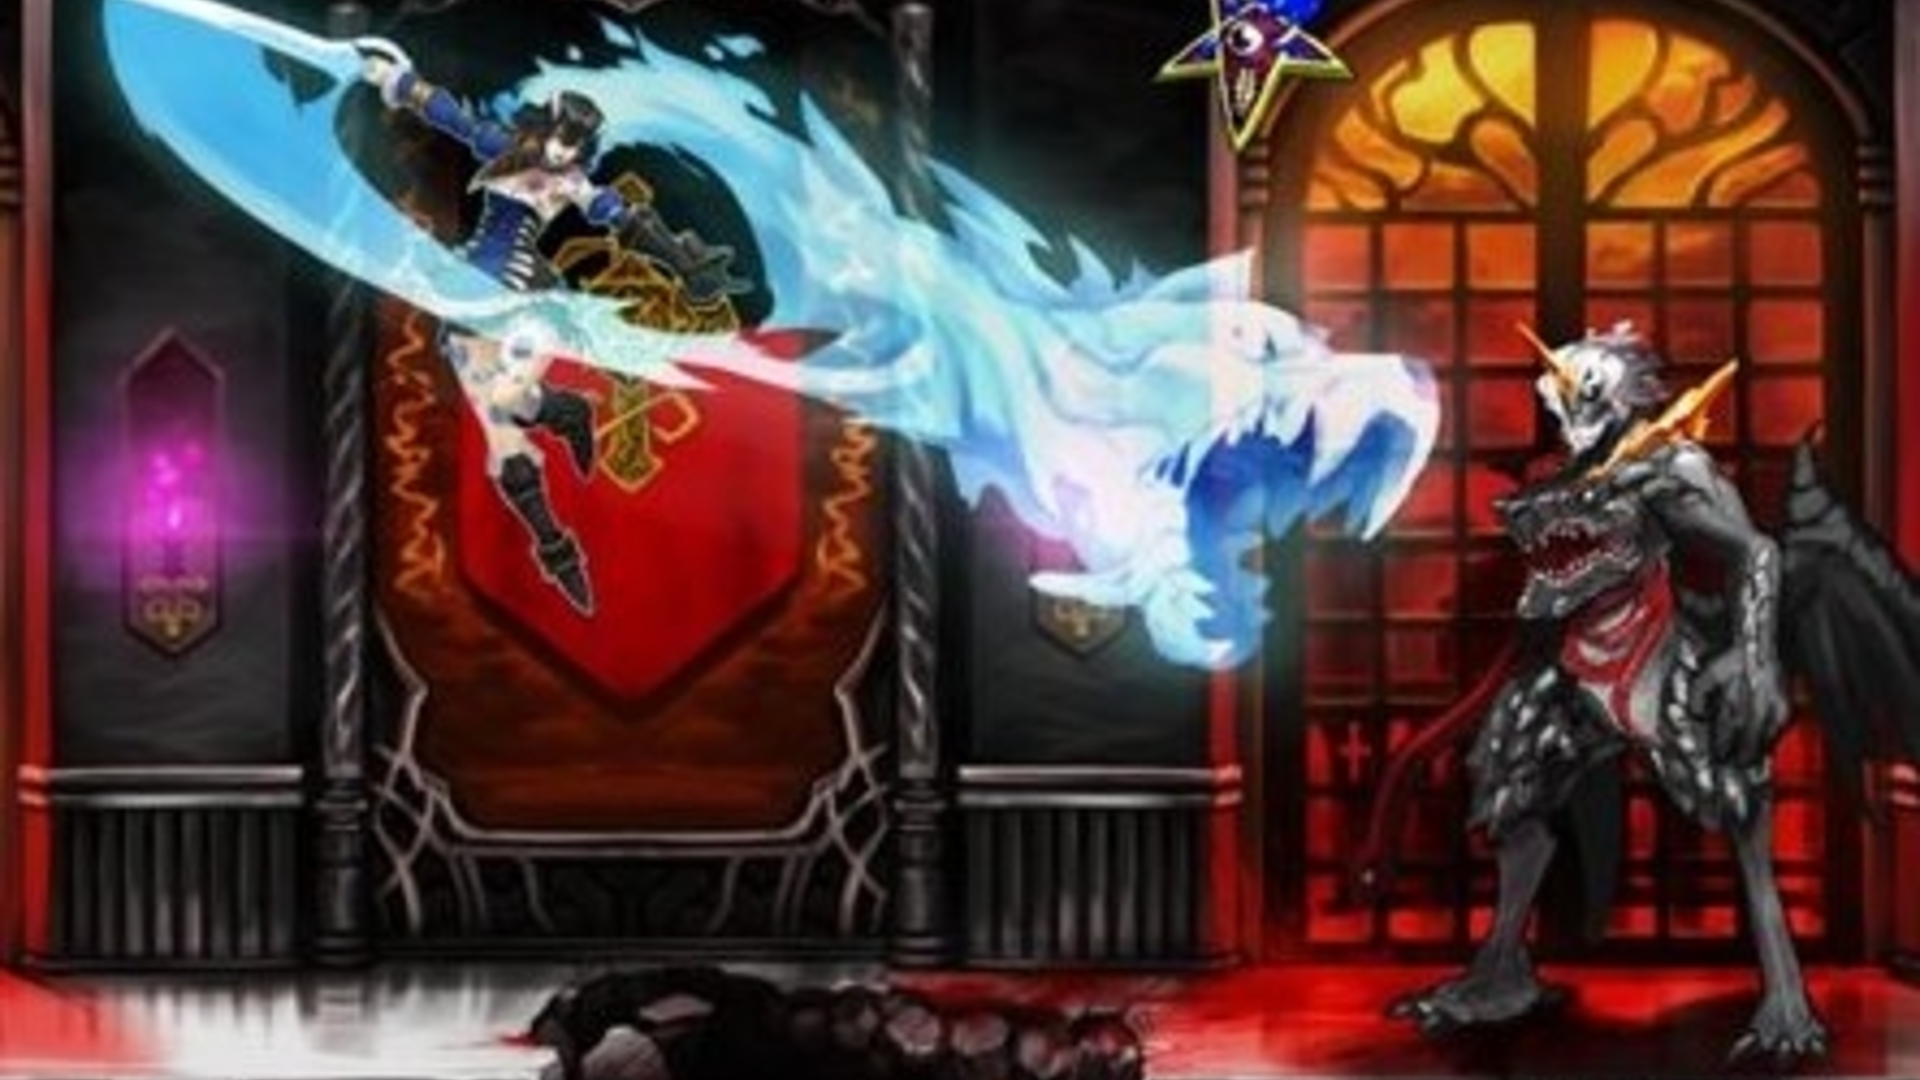 Bloodstained is the most funded video game ever on Kickstarter